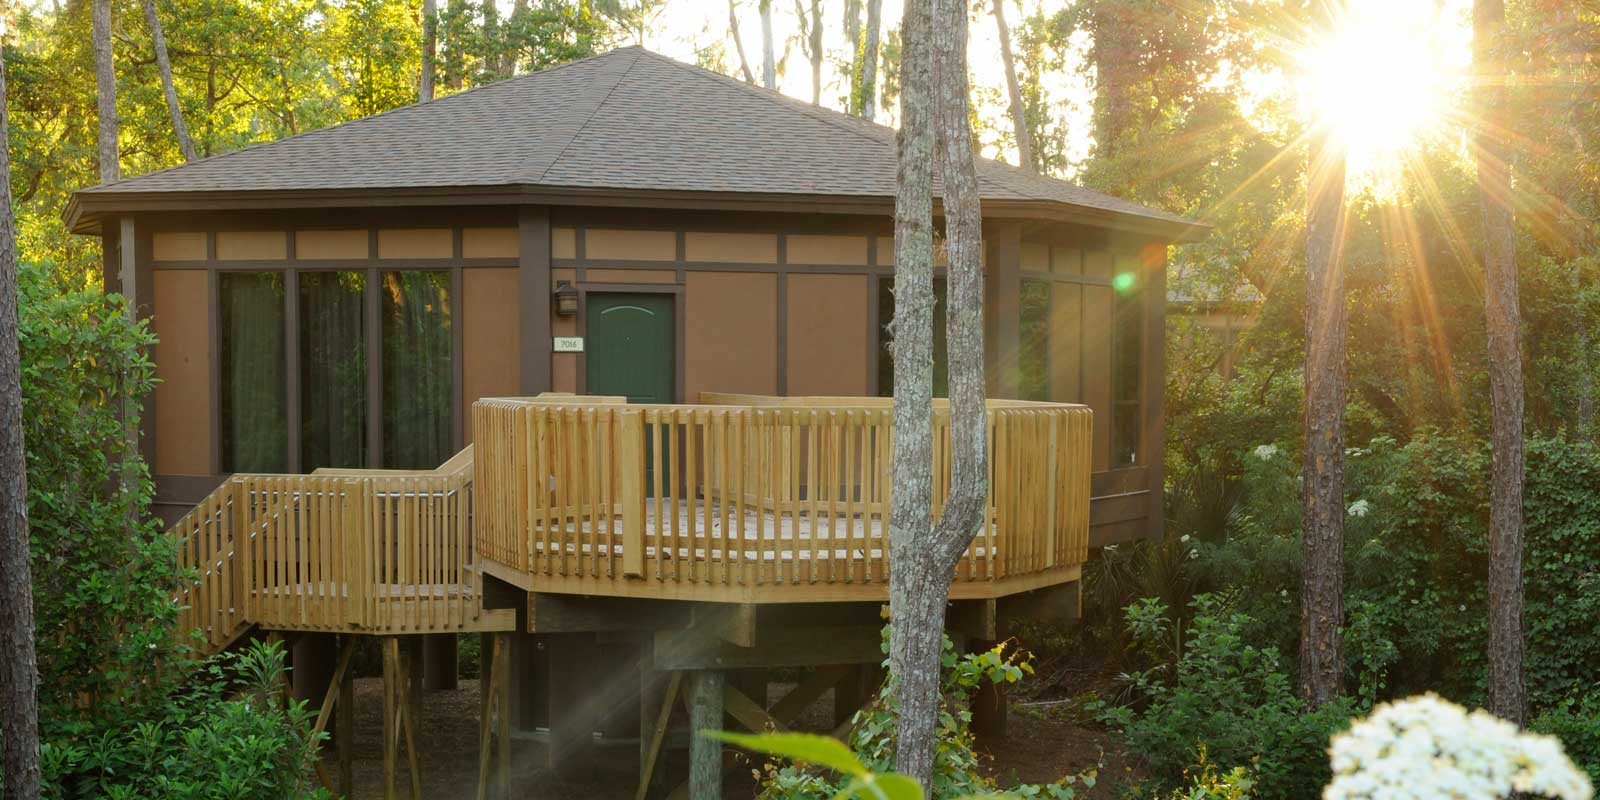 Landscape view of the treehouse villas at Saratoga Springs Resort at Disney World.